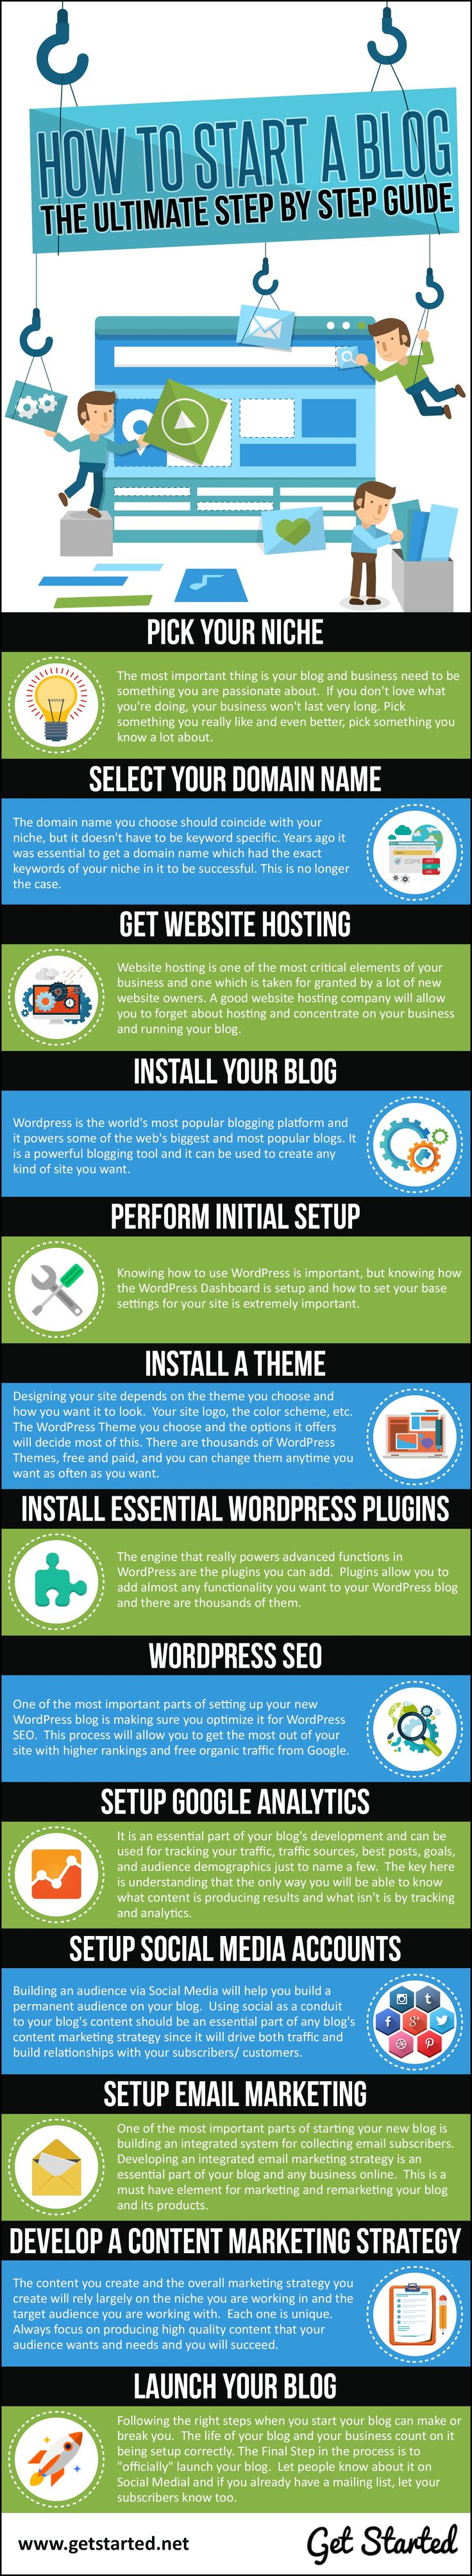 How to Start a Blog: The Ultimate Step by Step Guide. Learn how to start a blog the right way in the next 30 days with the Authority Blueprint here at GetStarted.net.